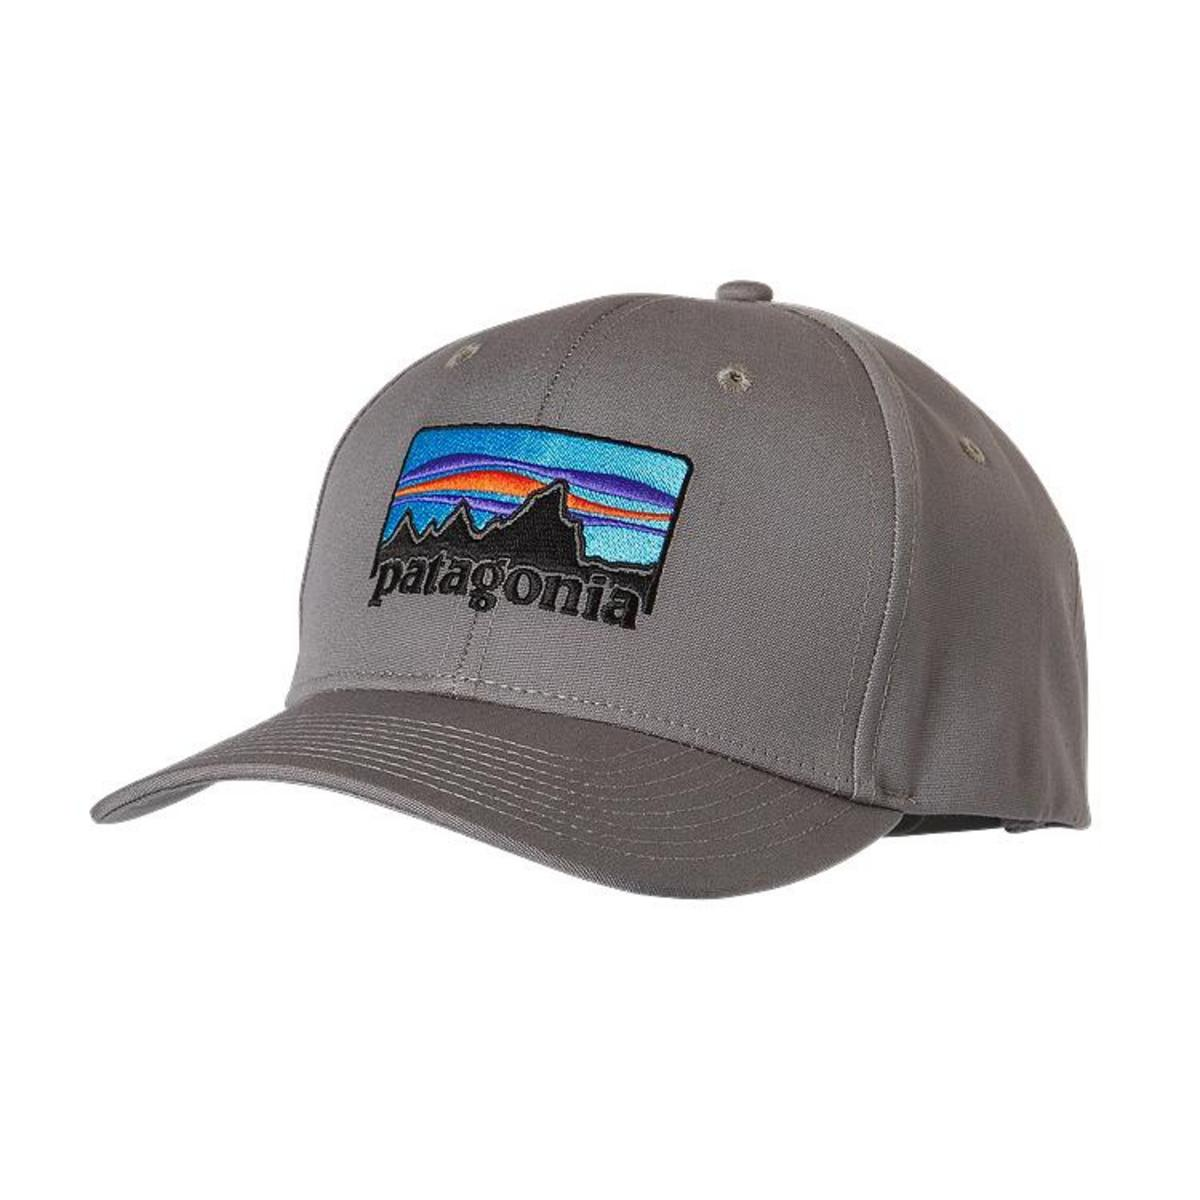 Patagonia 39 73 logo roger that hat fontana sports for Patagonia fish hat